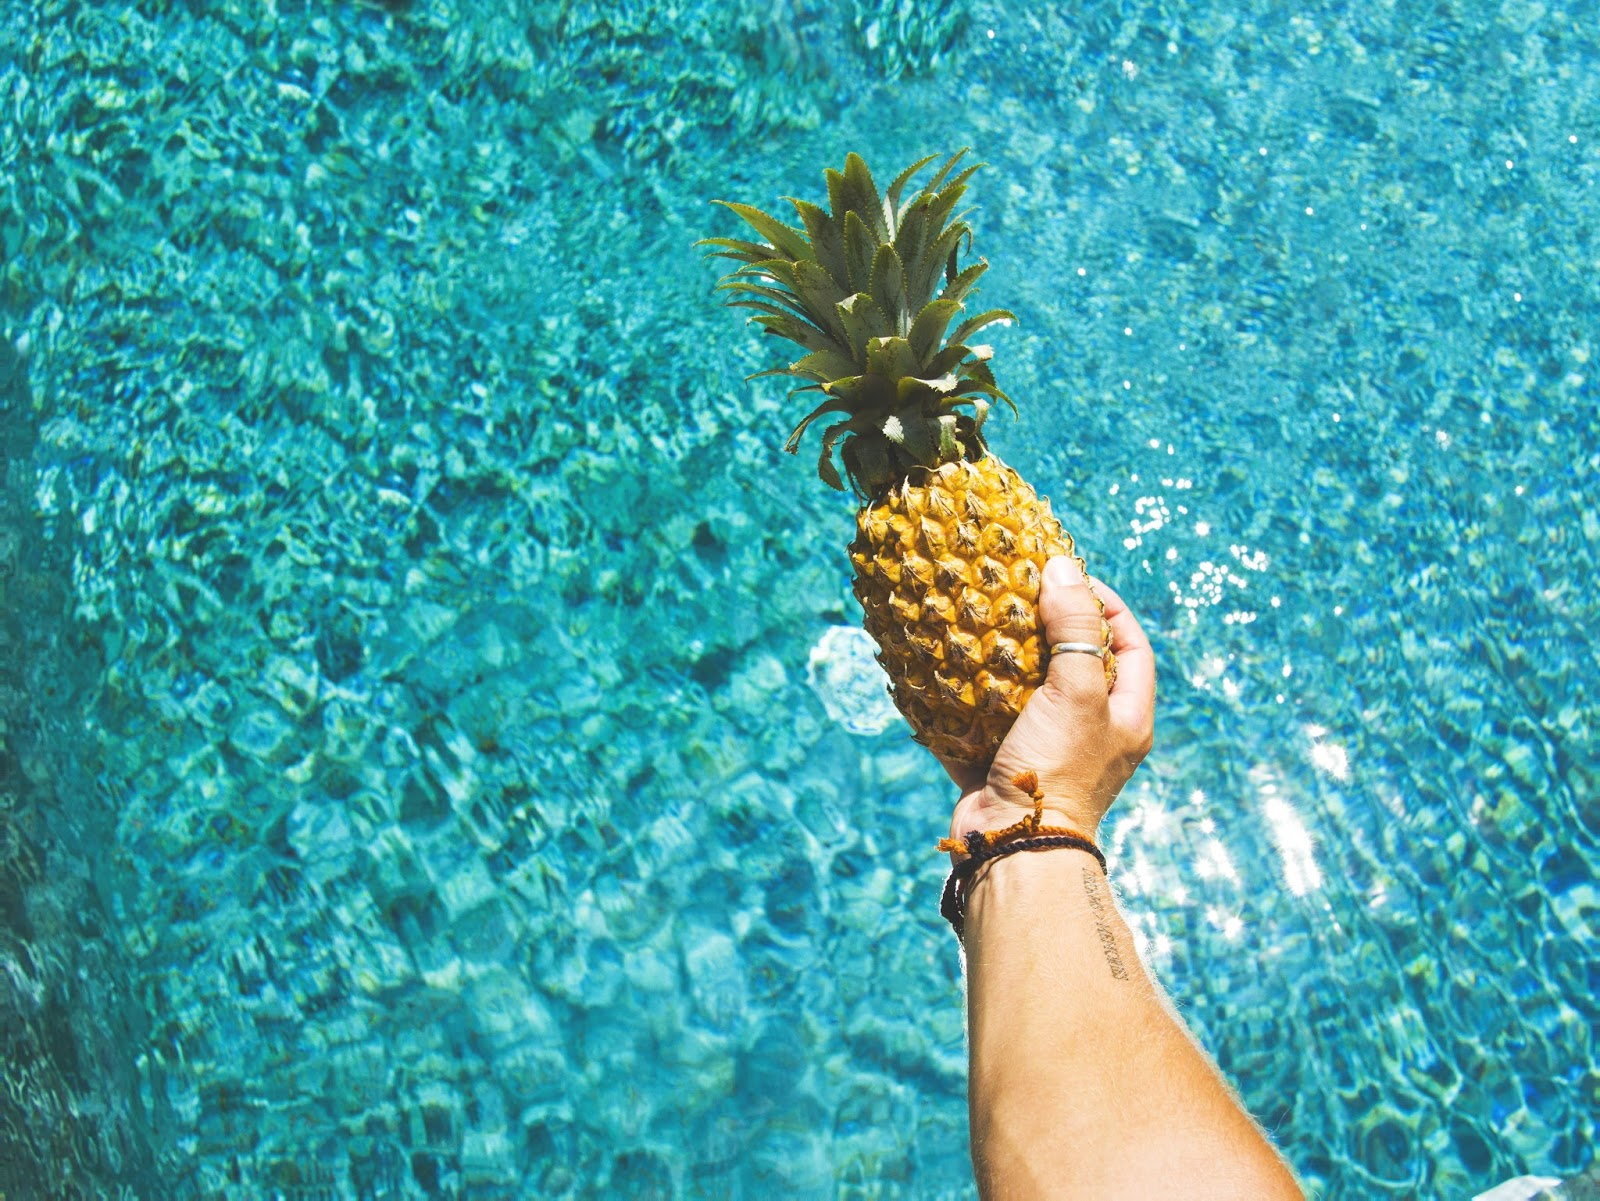 Pineapple in Pool